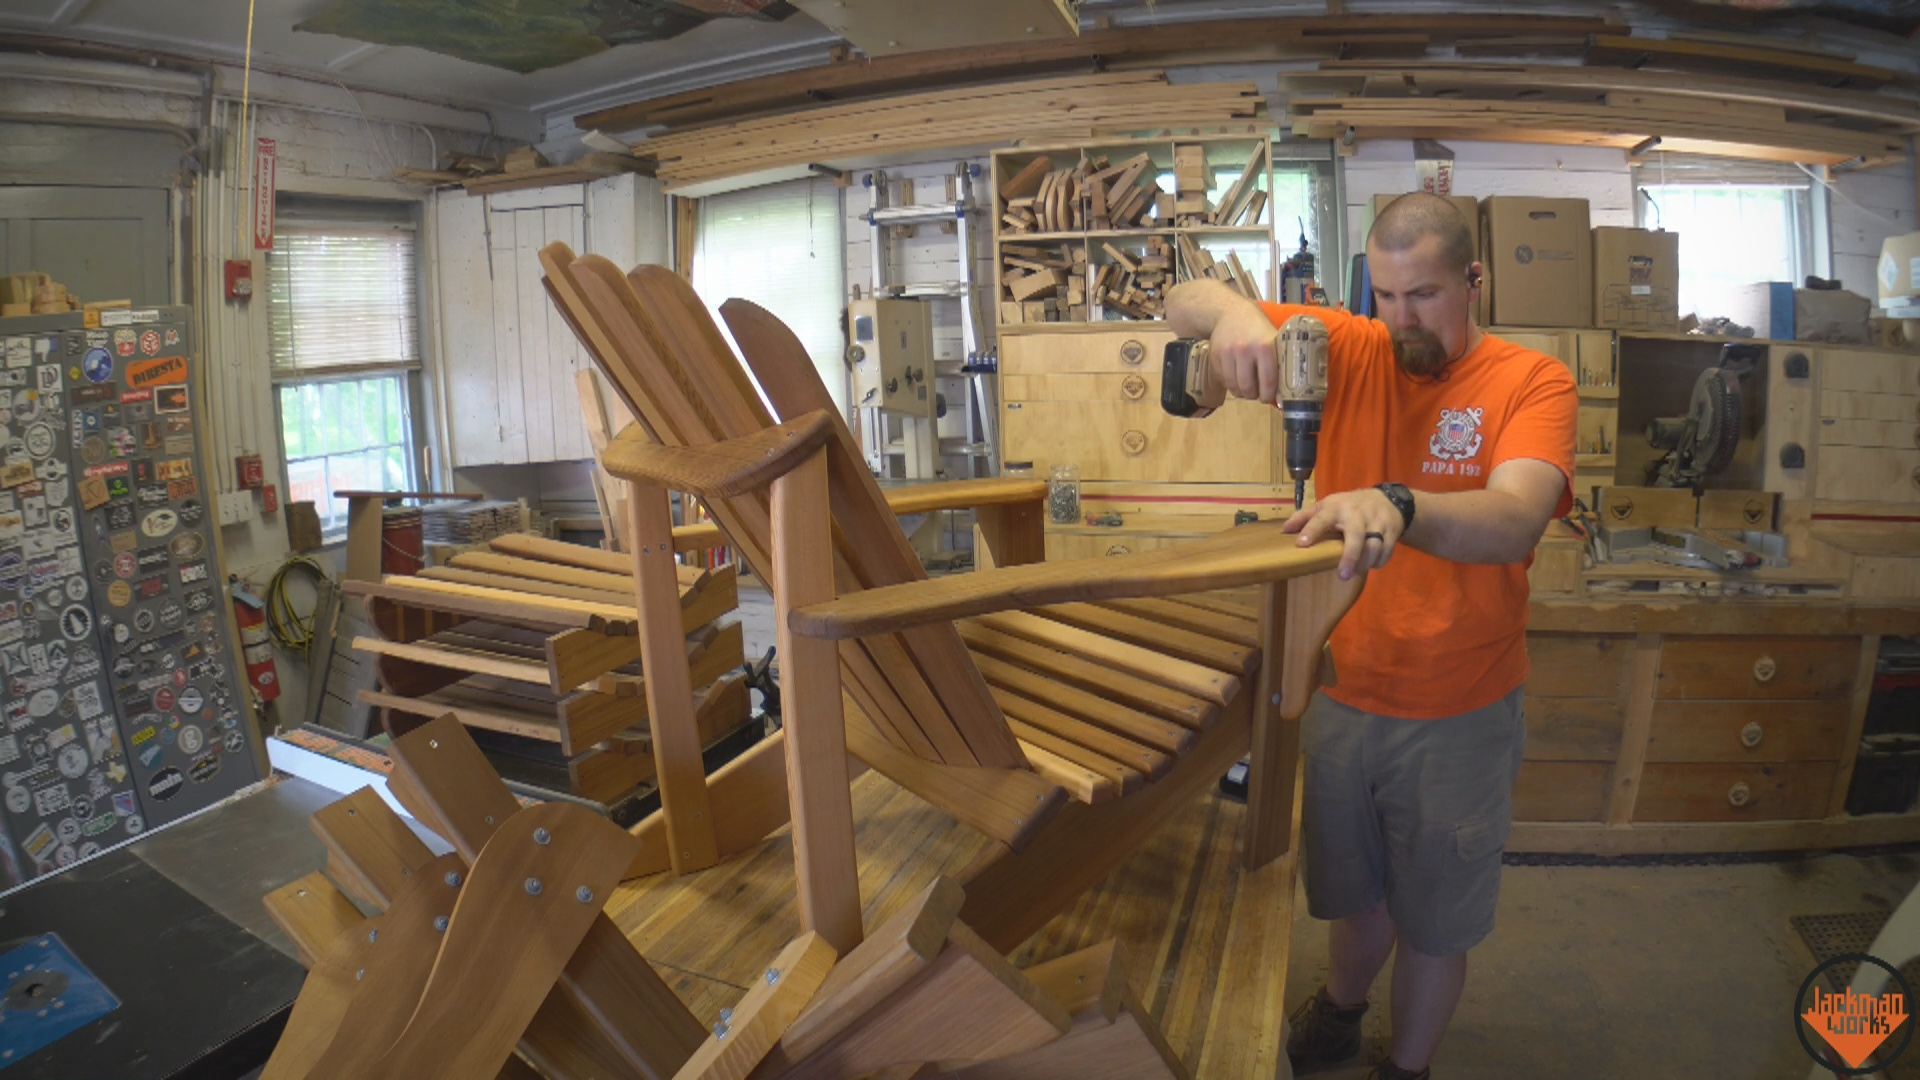 diy adirondack chair kit recaro office how to build the ultimate 29 jackman works plan an a woodworking plans cedar western